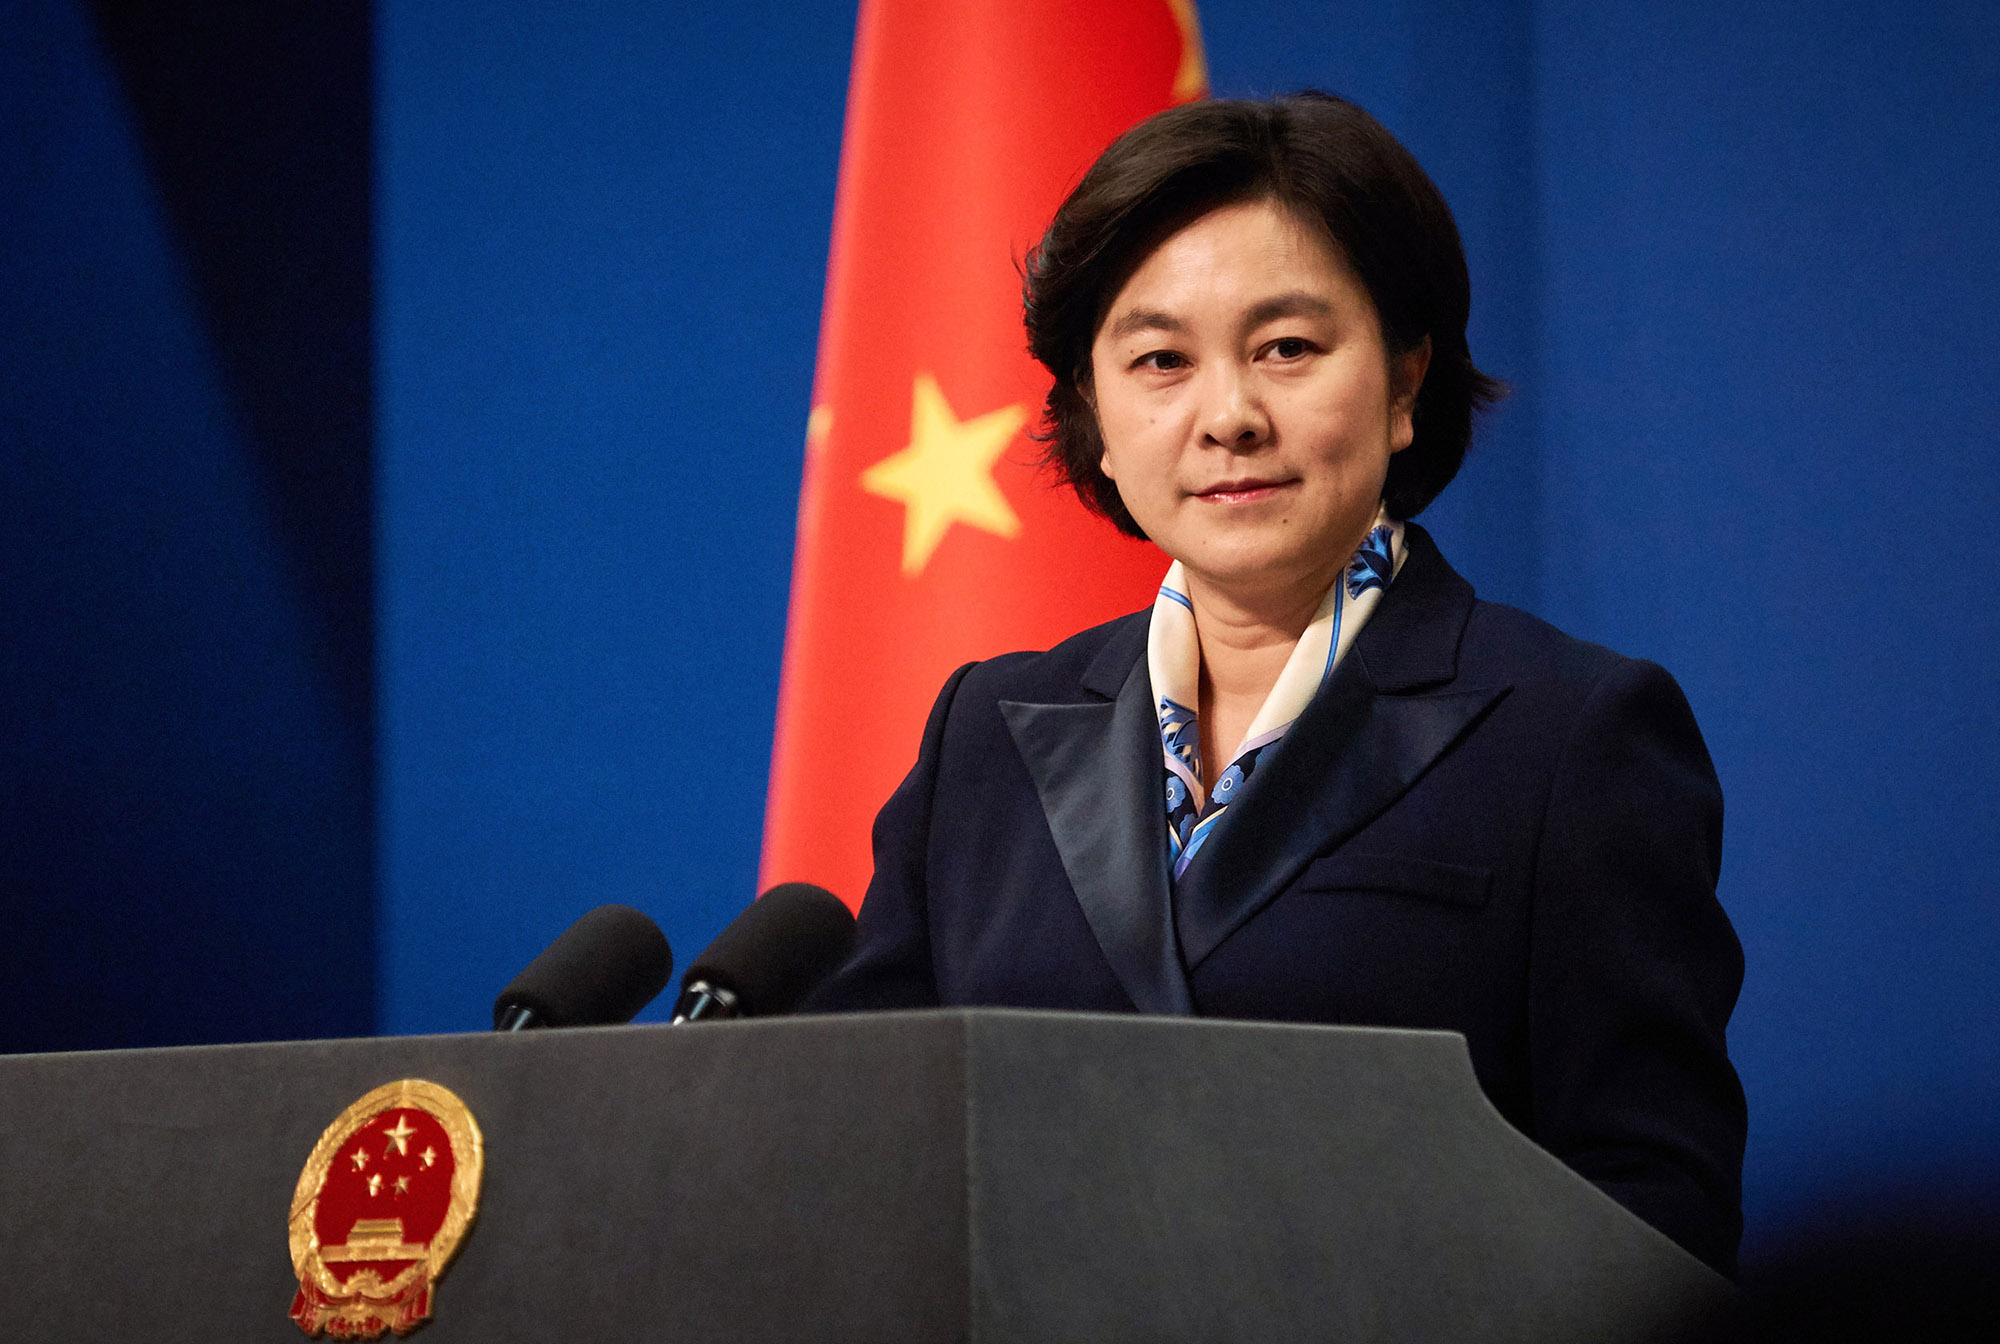 China's Ministry of Foreign Affairs spokesperson Hua Chunying